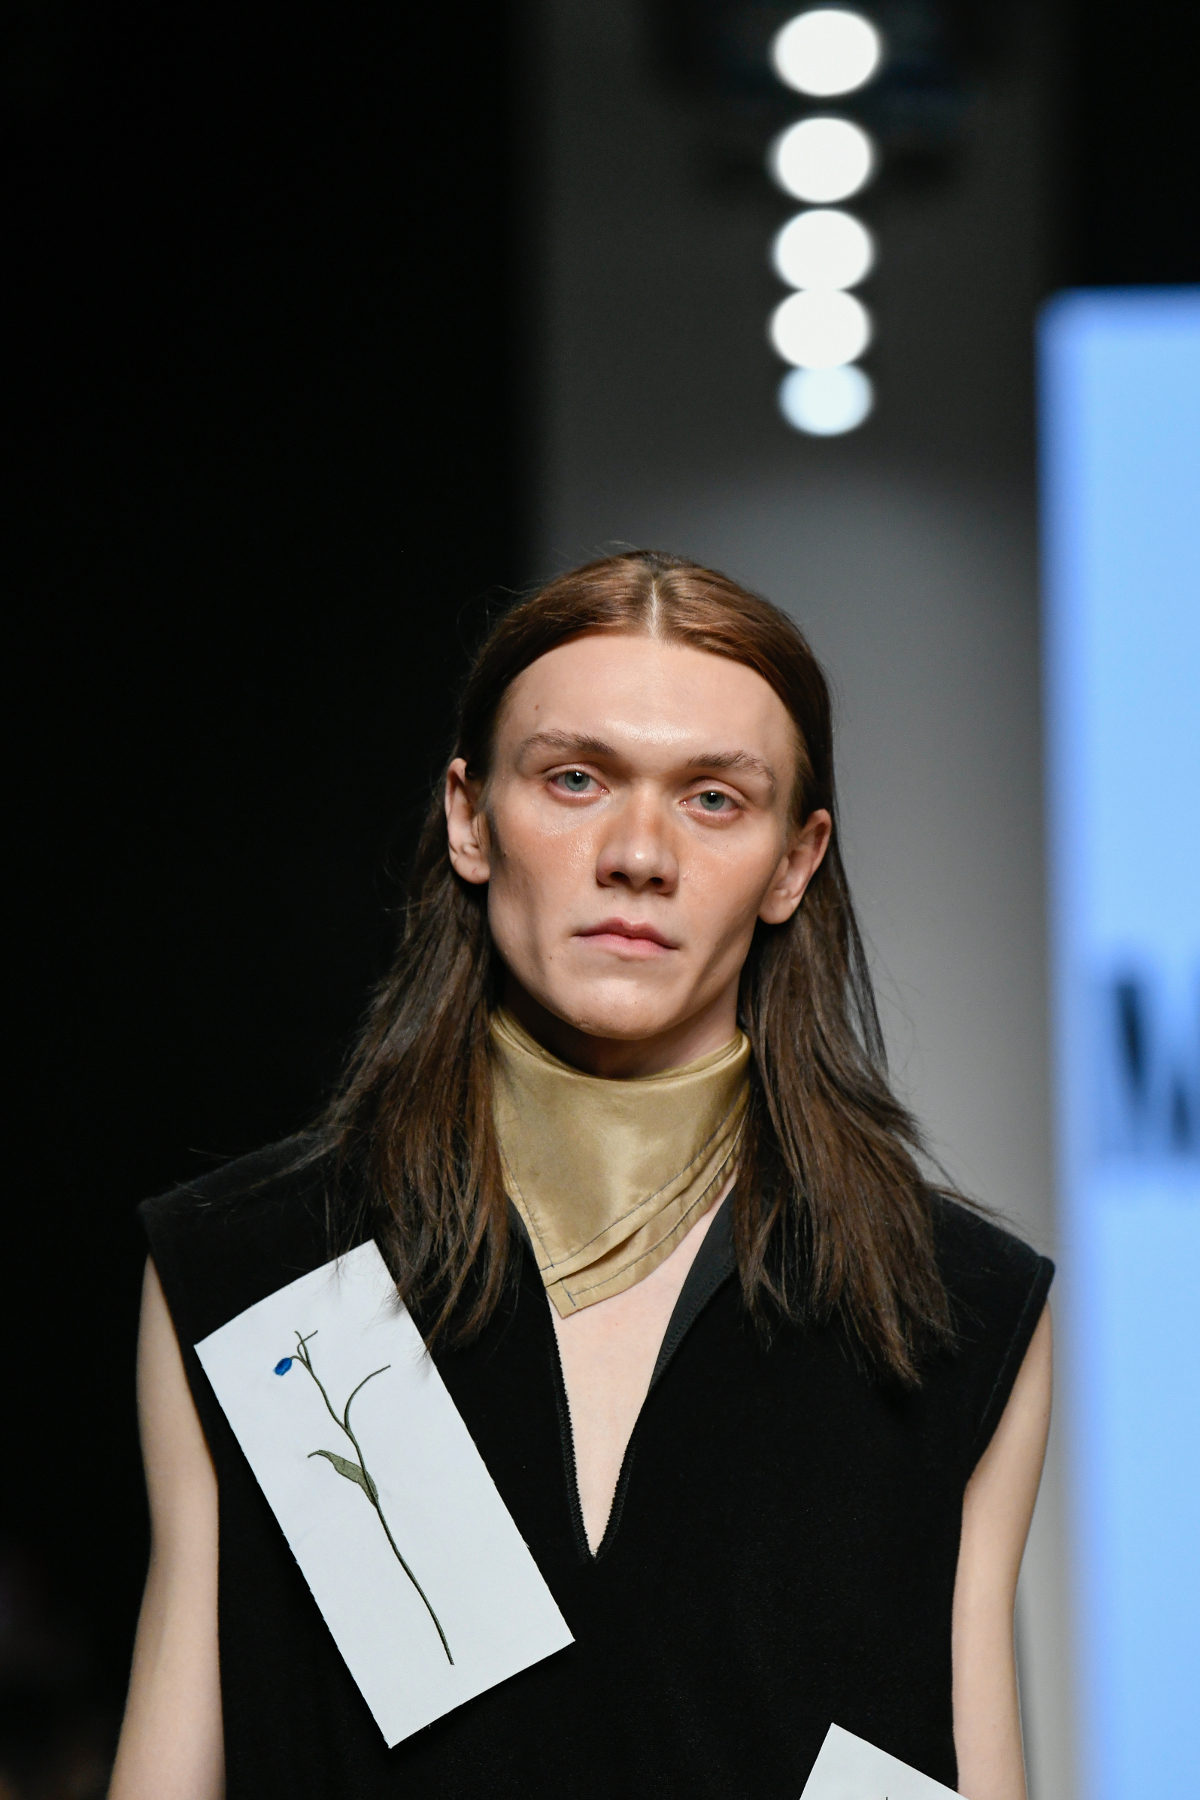 mltv-clothing-anna-sjunnesson-moscow-fashion-week-global-talents-2019-13